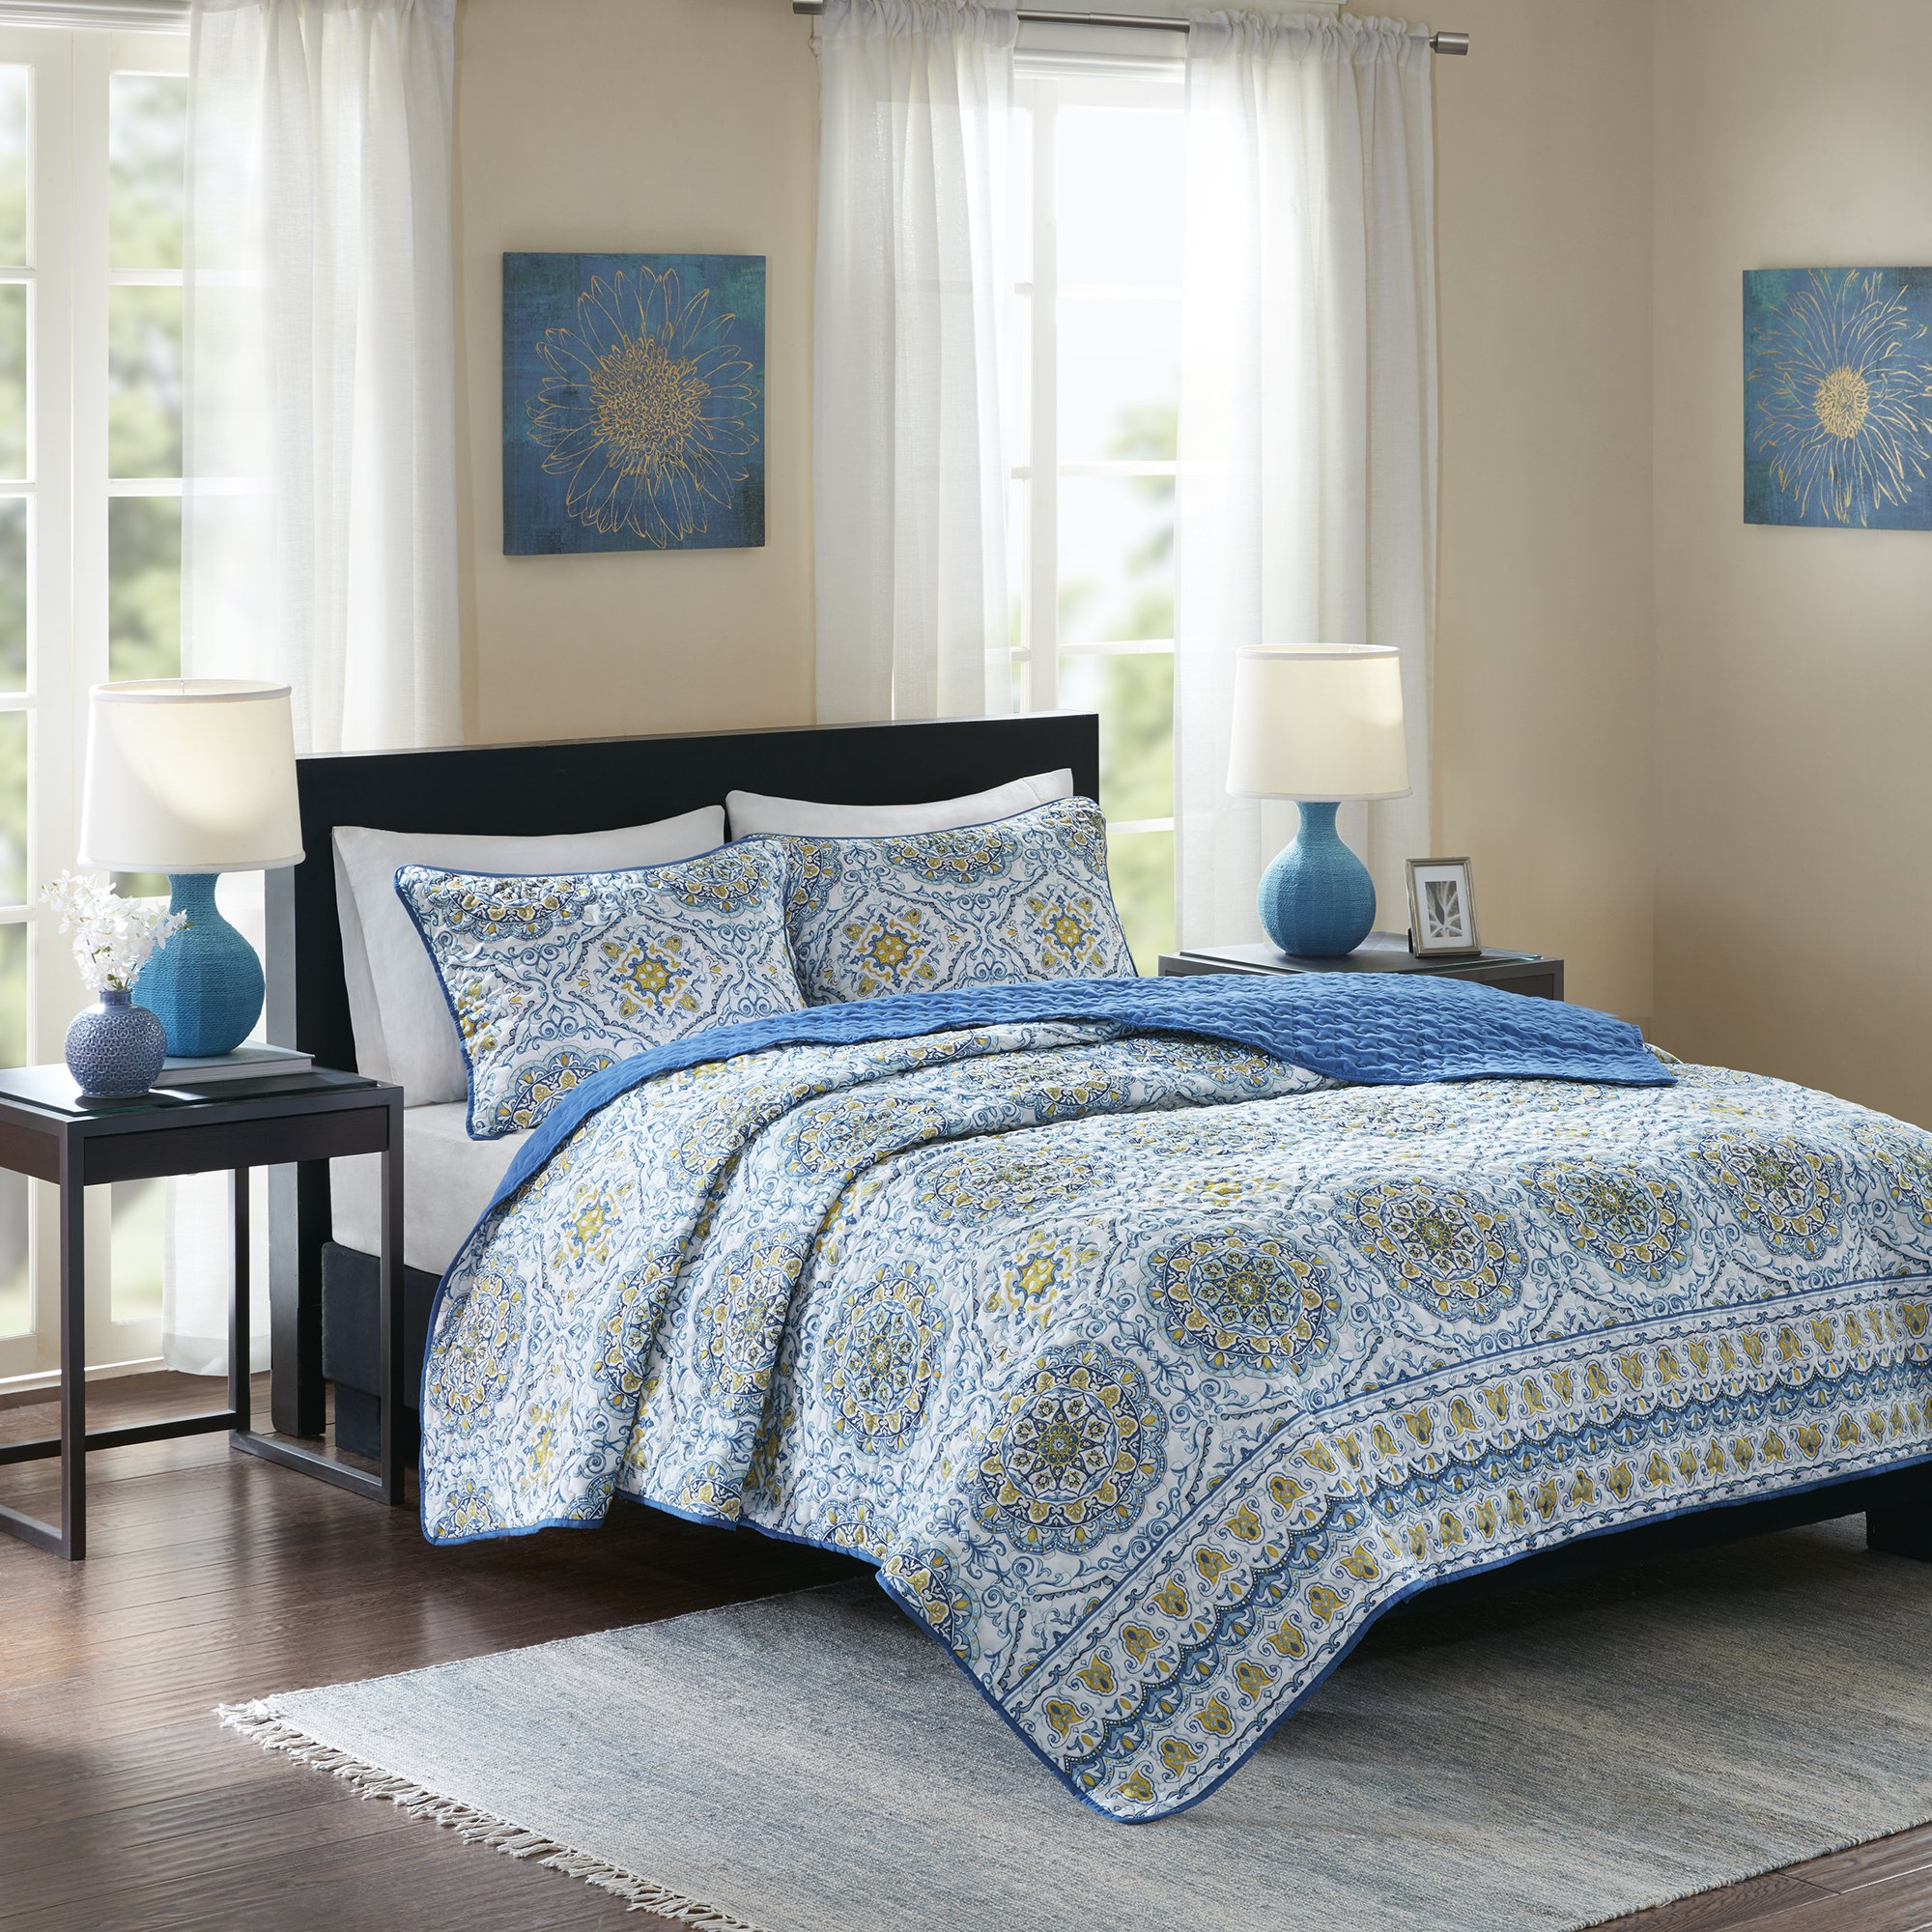 Home Essence Taya 3 Piece King Quilt Set Reversible Solid Printed Medallions Pattern Light-Weight Rustic Coverlet Soft Microfiber Bedding for All Season, Blue by Home Essence (Image #2)